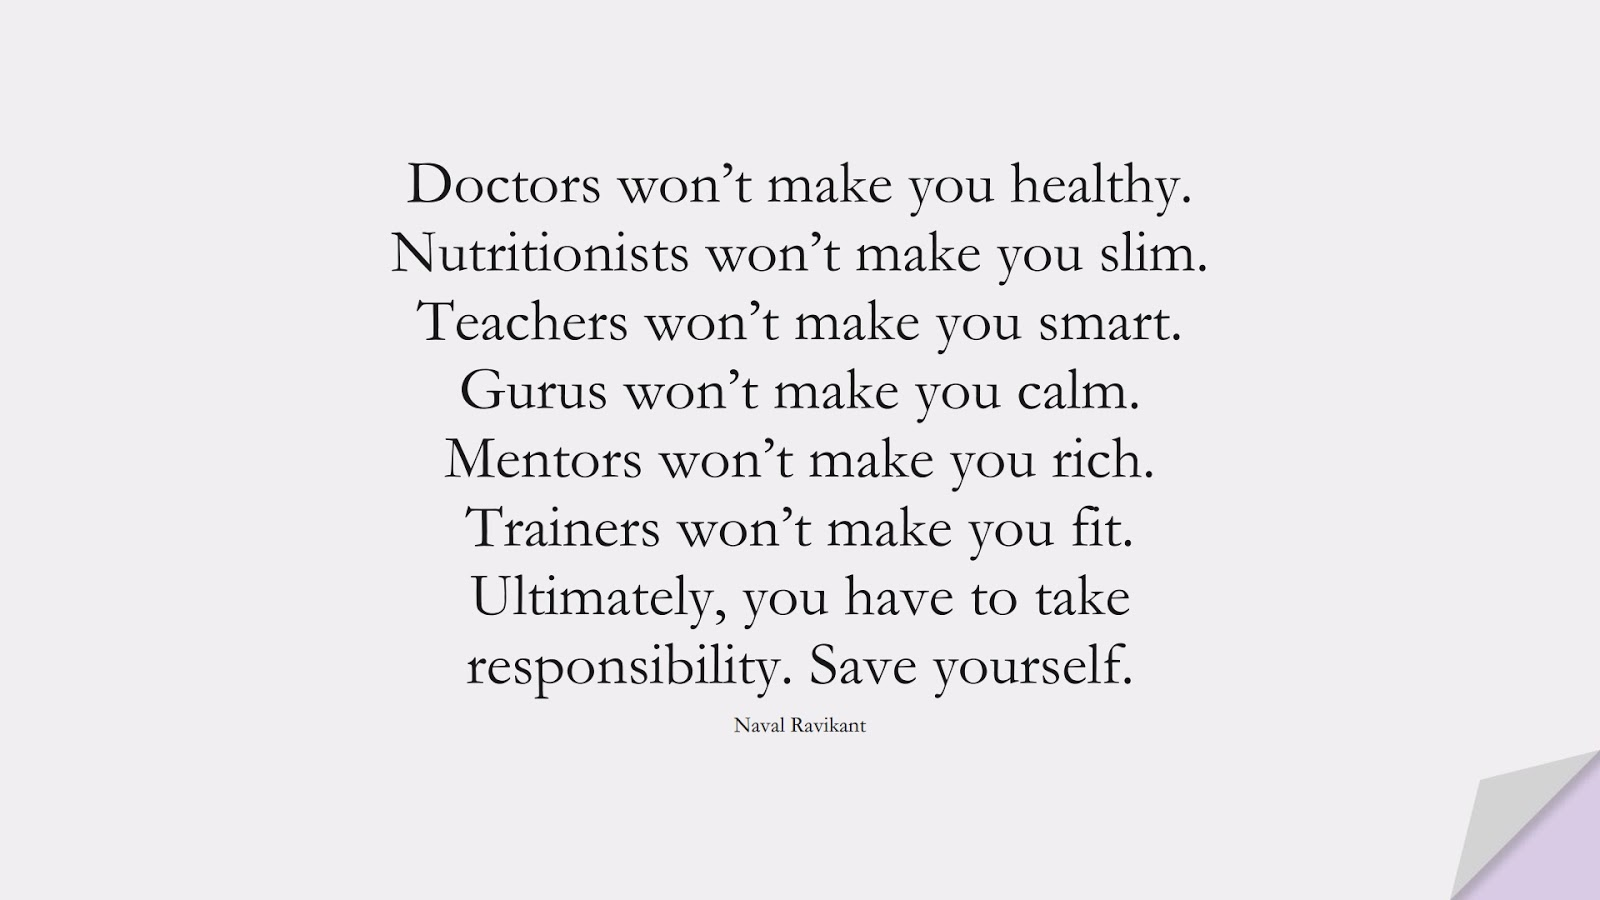 Doctors won't make you healthy. Nutritionists won't make you slim. Teachers won't make you smart. Gurus won't make you calm. Mentors won't make you rich. Trainers won't make you fit. Ultimately, you have to take responsibility. Save yourself. (Naval Ravikant);  #StoicQuotes